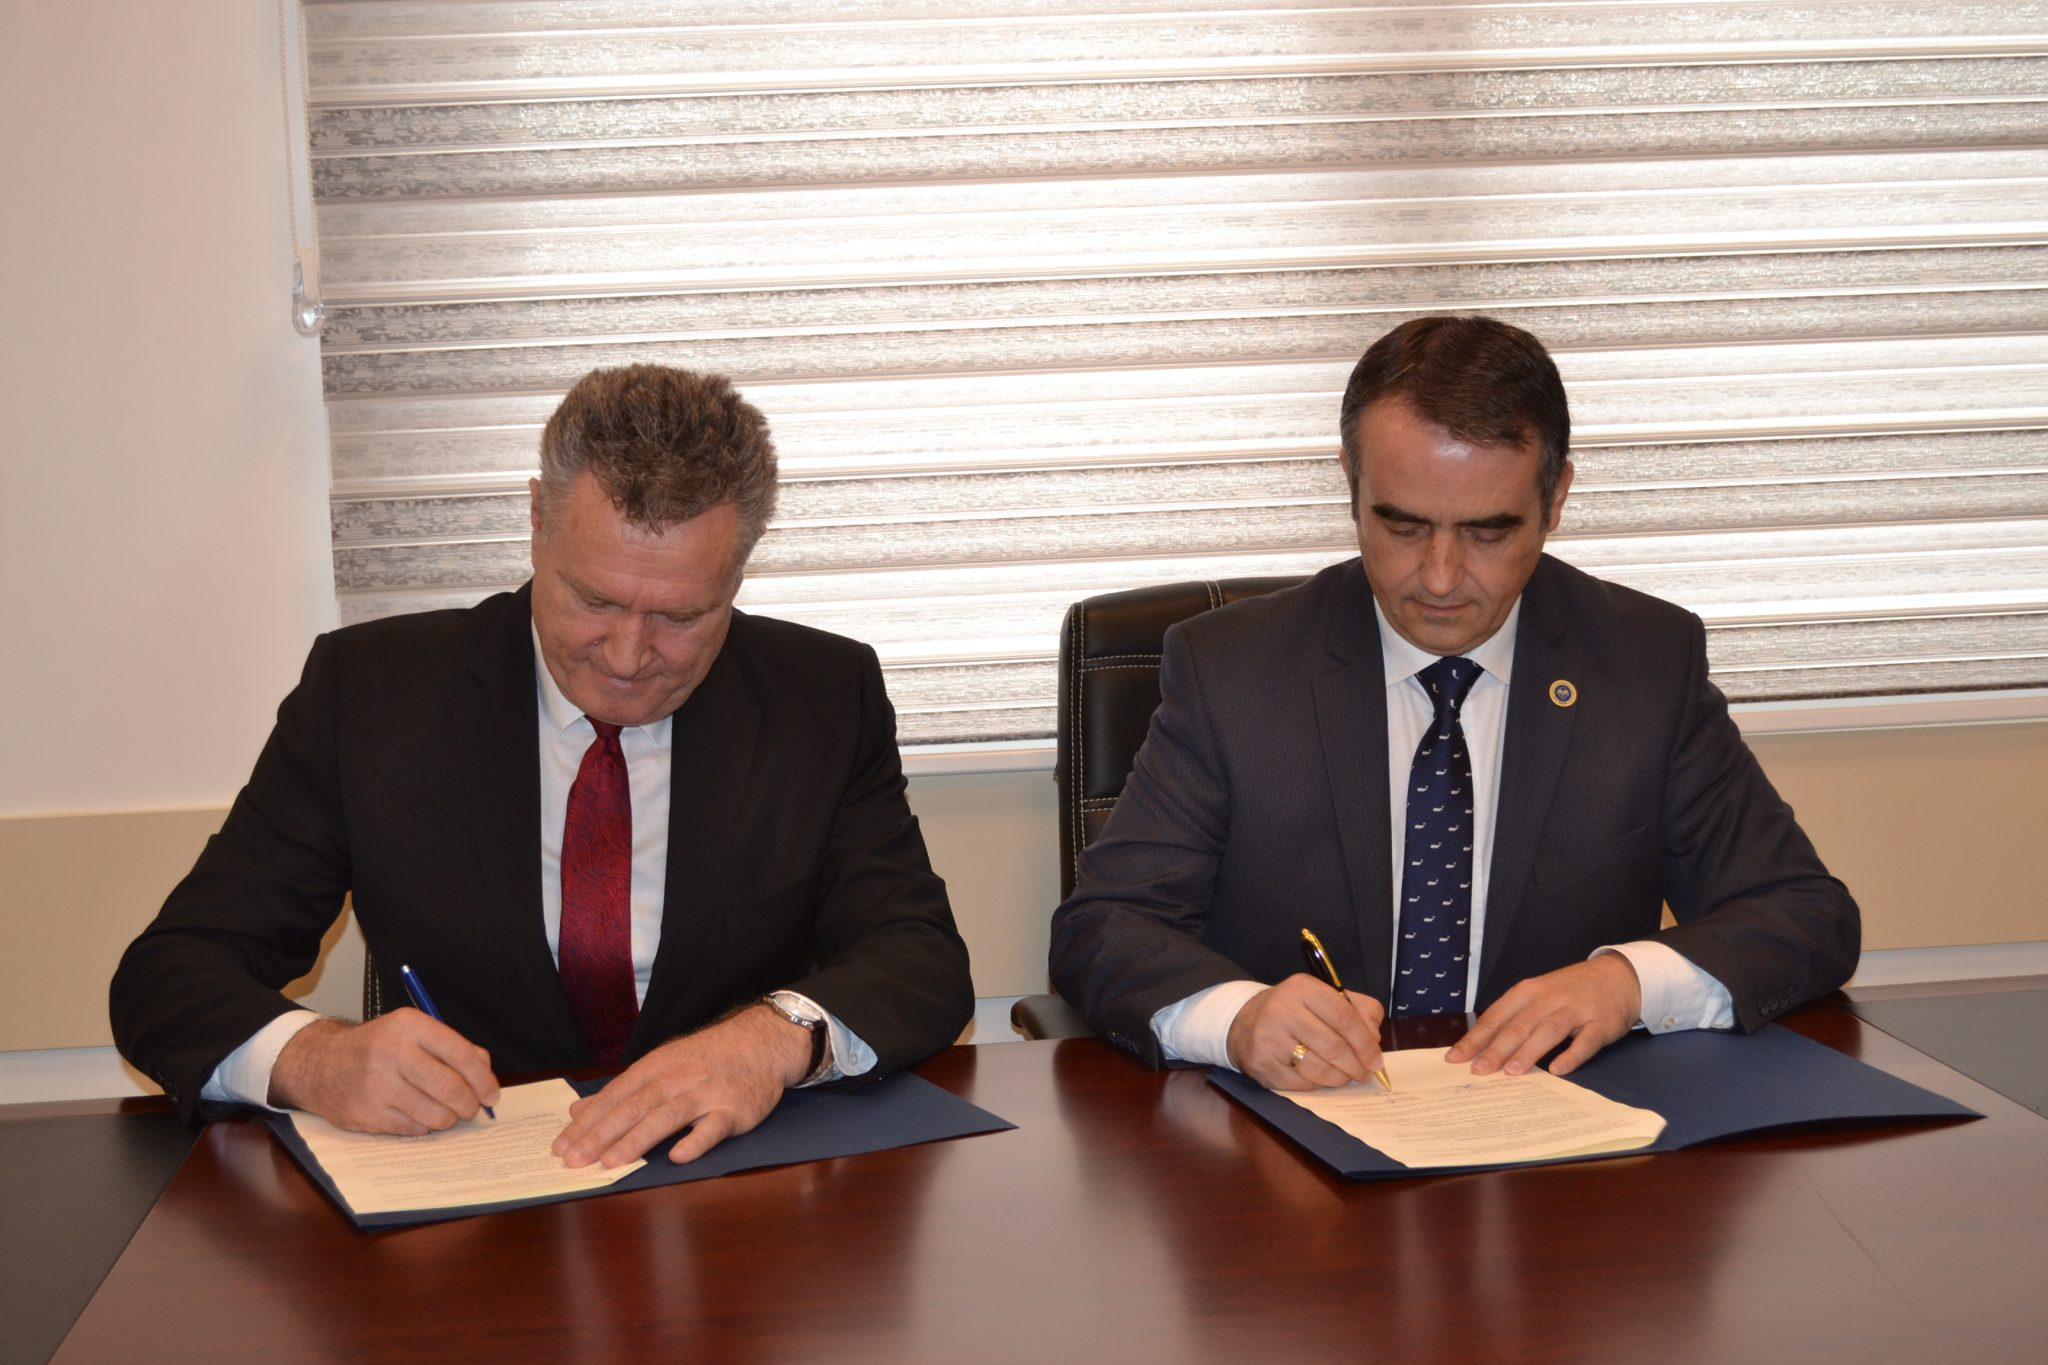 Cooperation Agreement was signed between Rector of UMIB and National Coordinator for Culture, Youth and Sports